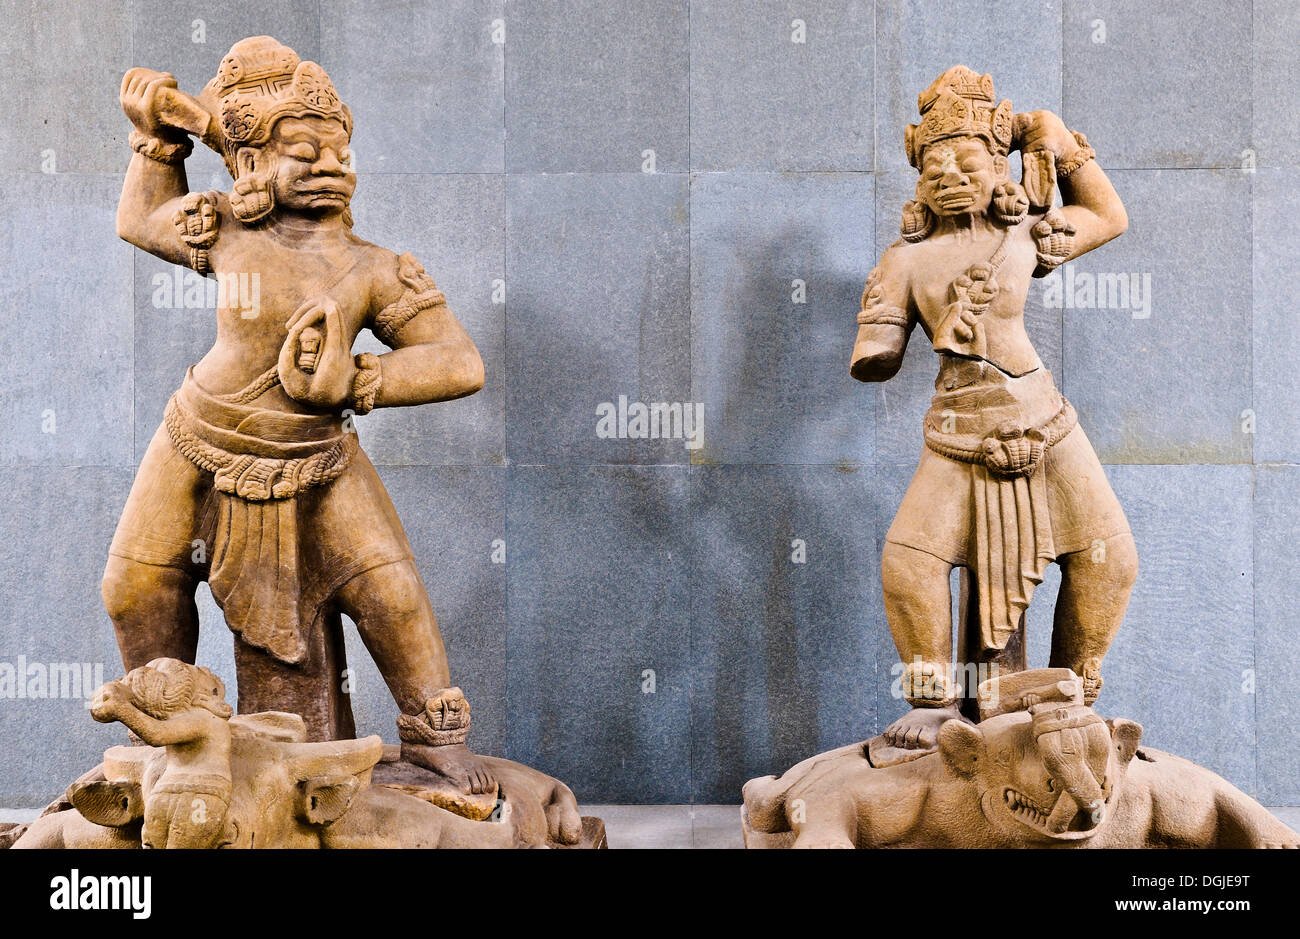 Statues of Dvarapala, demigod who guards the entrance, Cham Museum, Da Nang, Vietnam, Southeast Asia - Stock Image